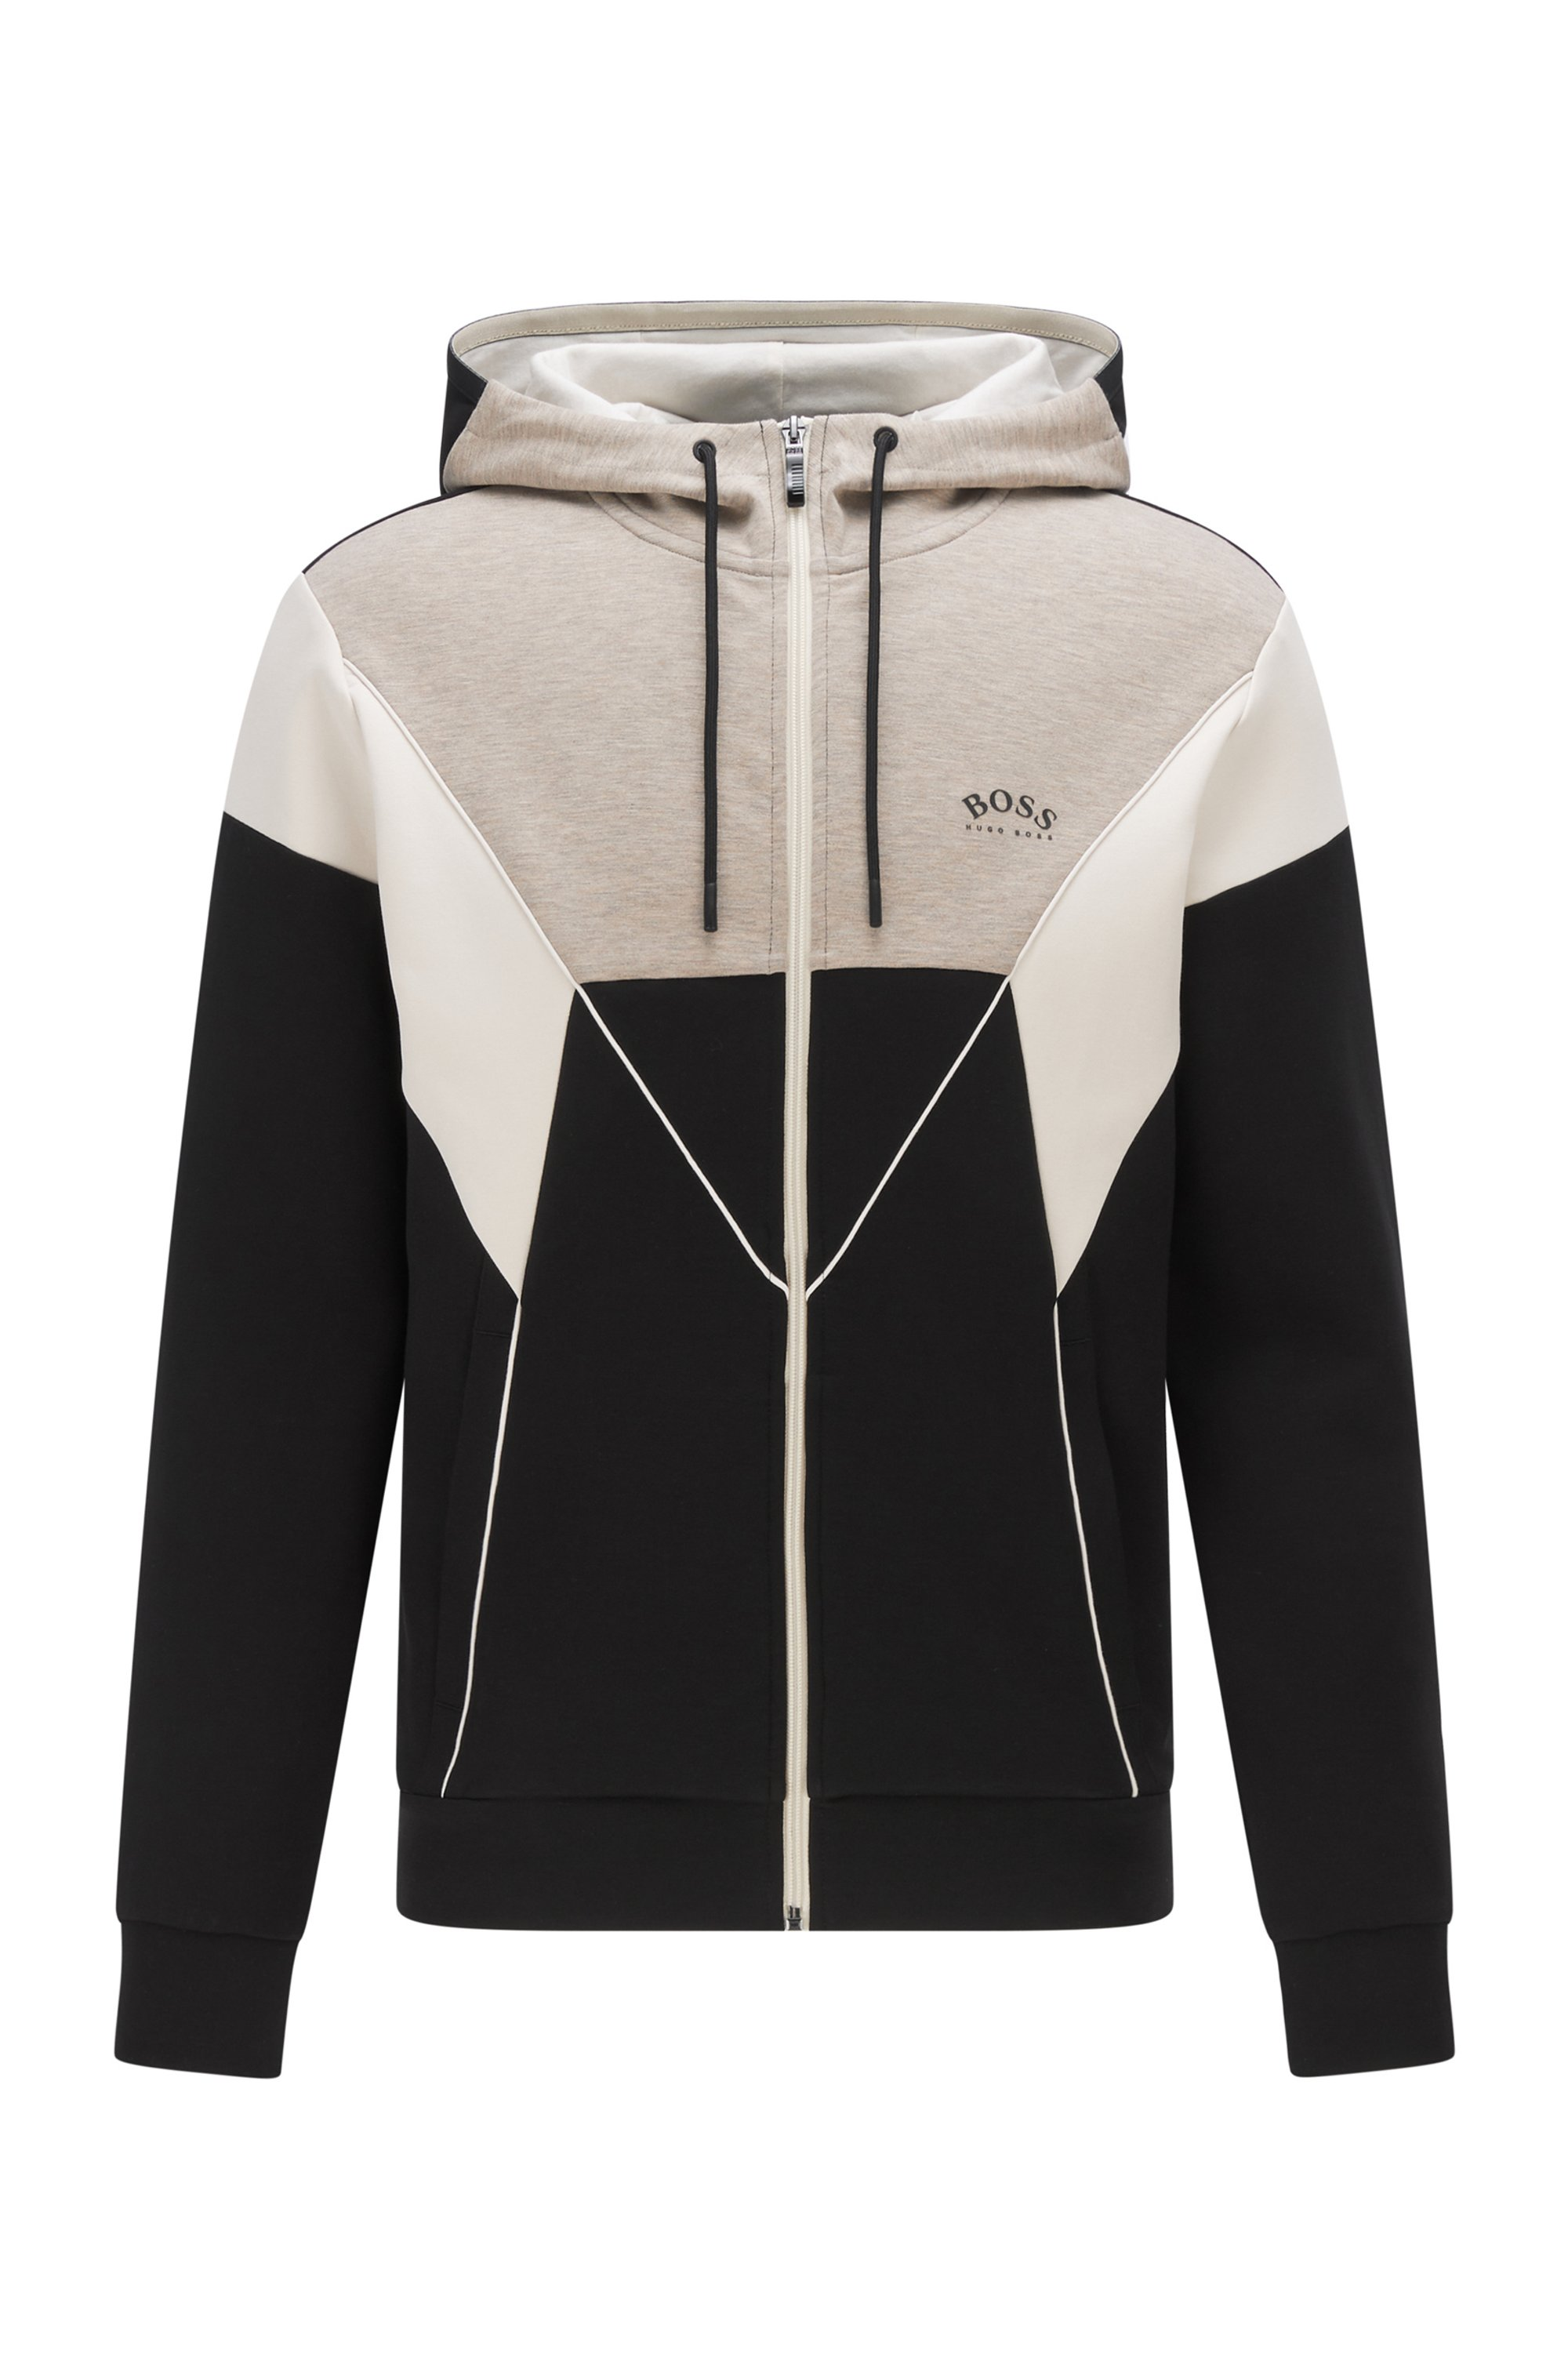 Color-blocked hooded sweatshirt in a cotton blend, Black